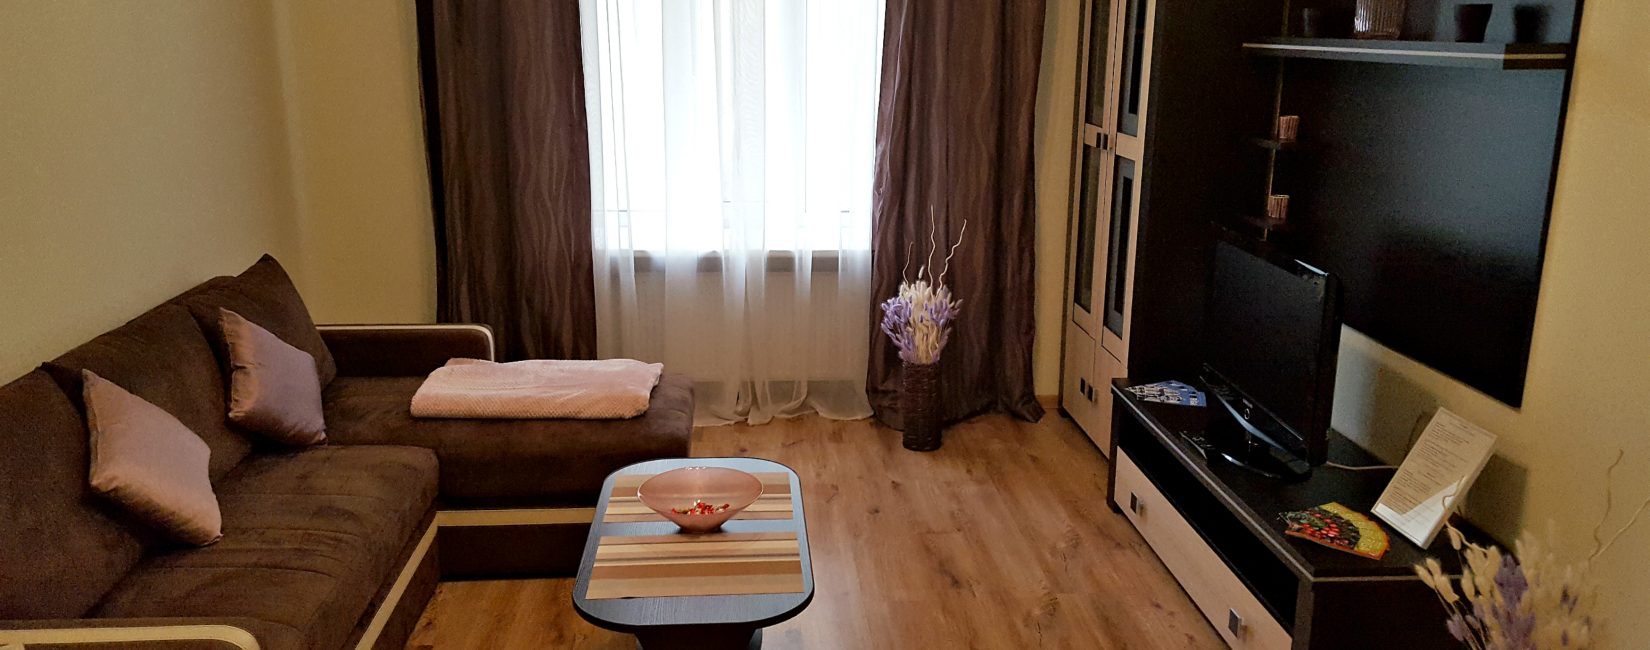 Riga Central Avotu Apartments - 2 bedrooms